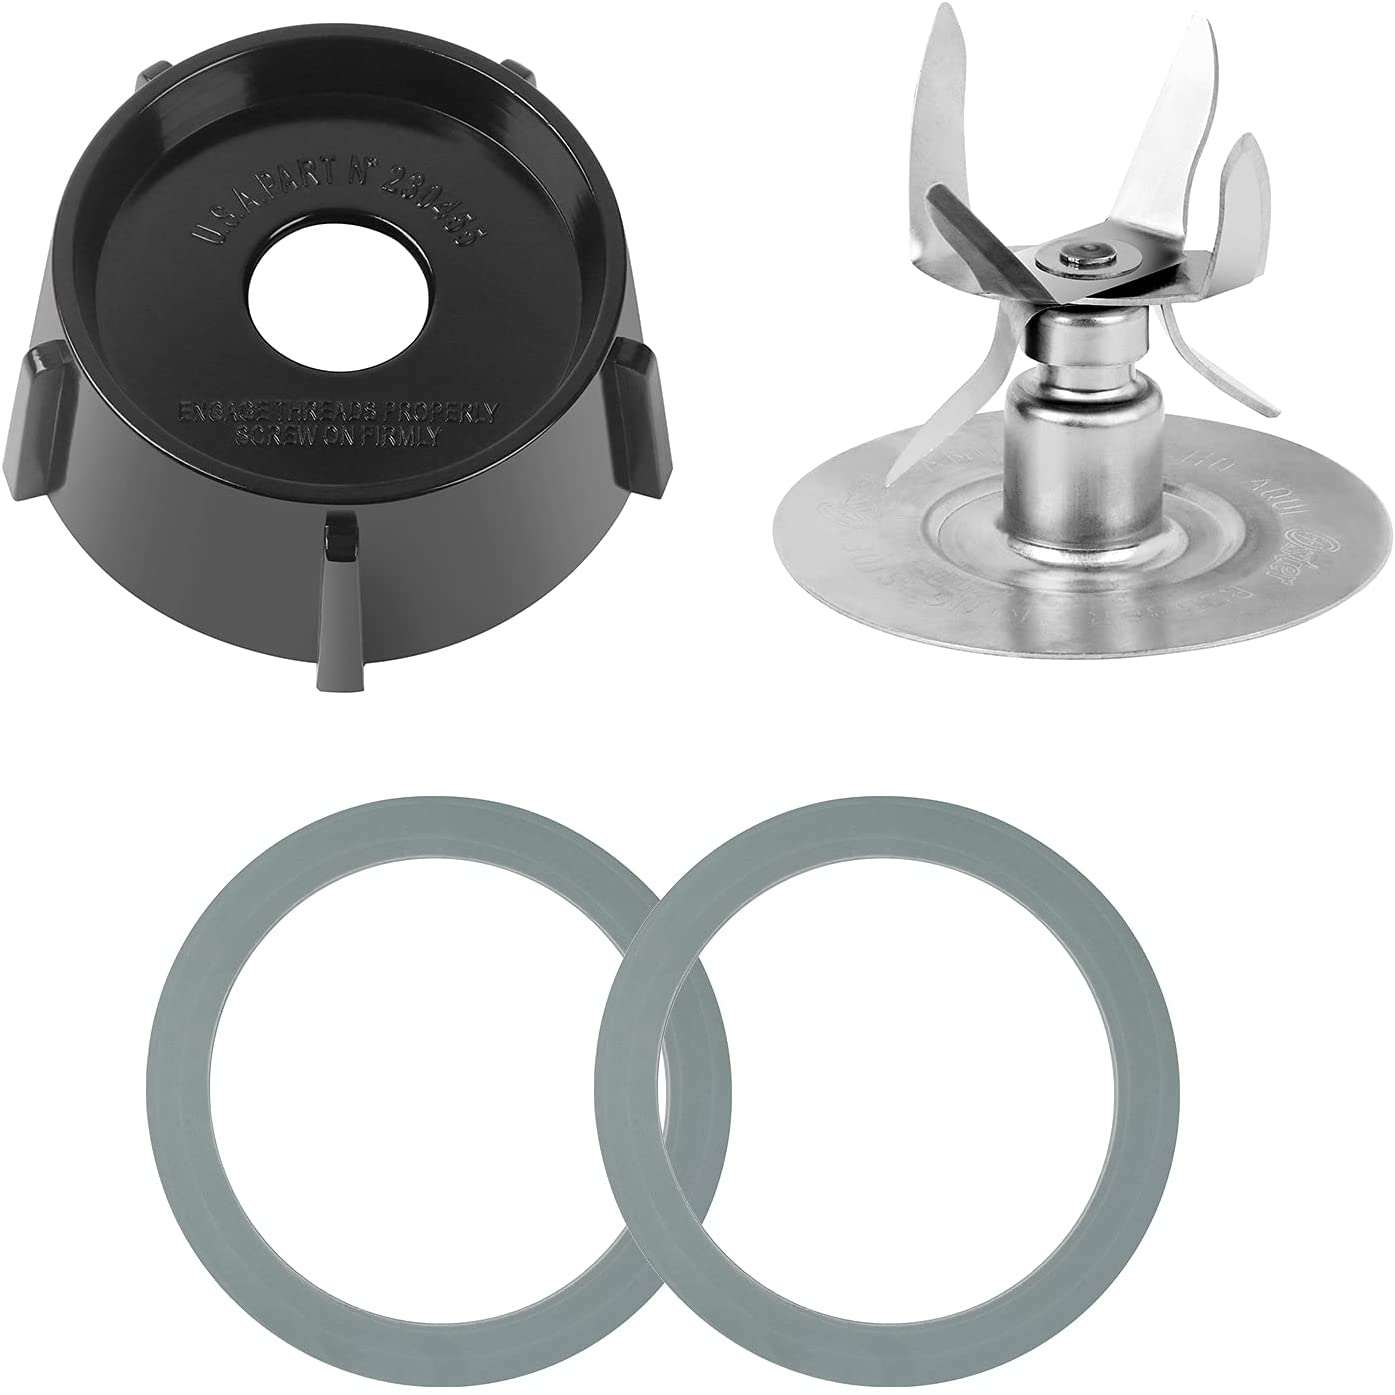 Replacement Parts For Oster Osterizer Blender Blades with 4902 Blender Jar Bottom & 6 Point Fusion Blade 4980 & 2 Pcs O Ring Rubber Seal Gasket